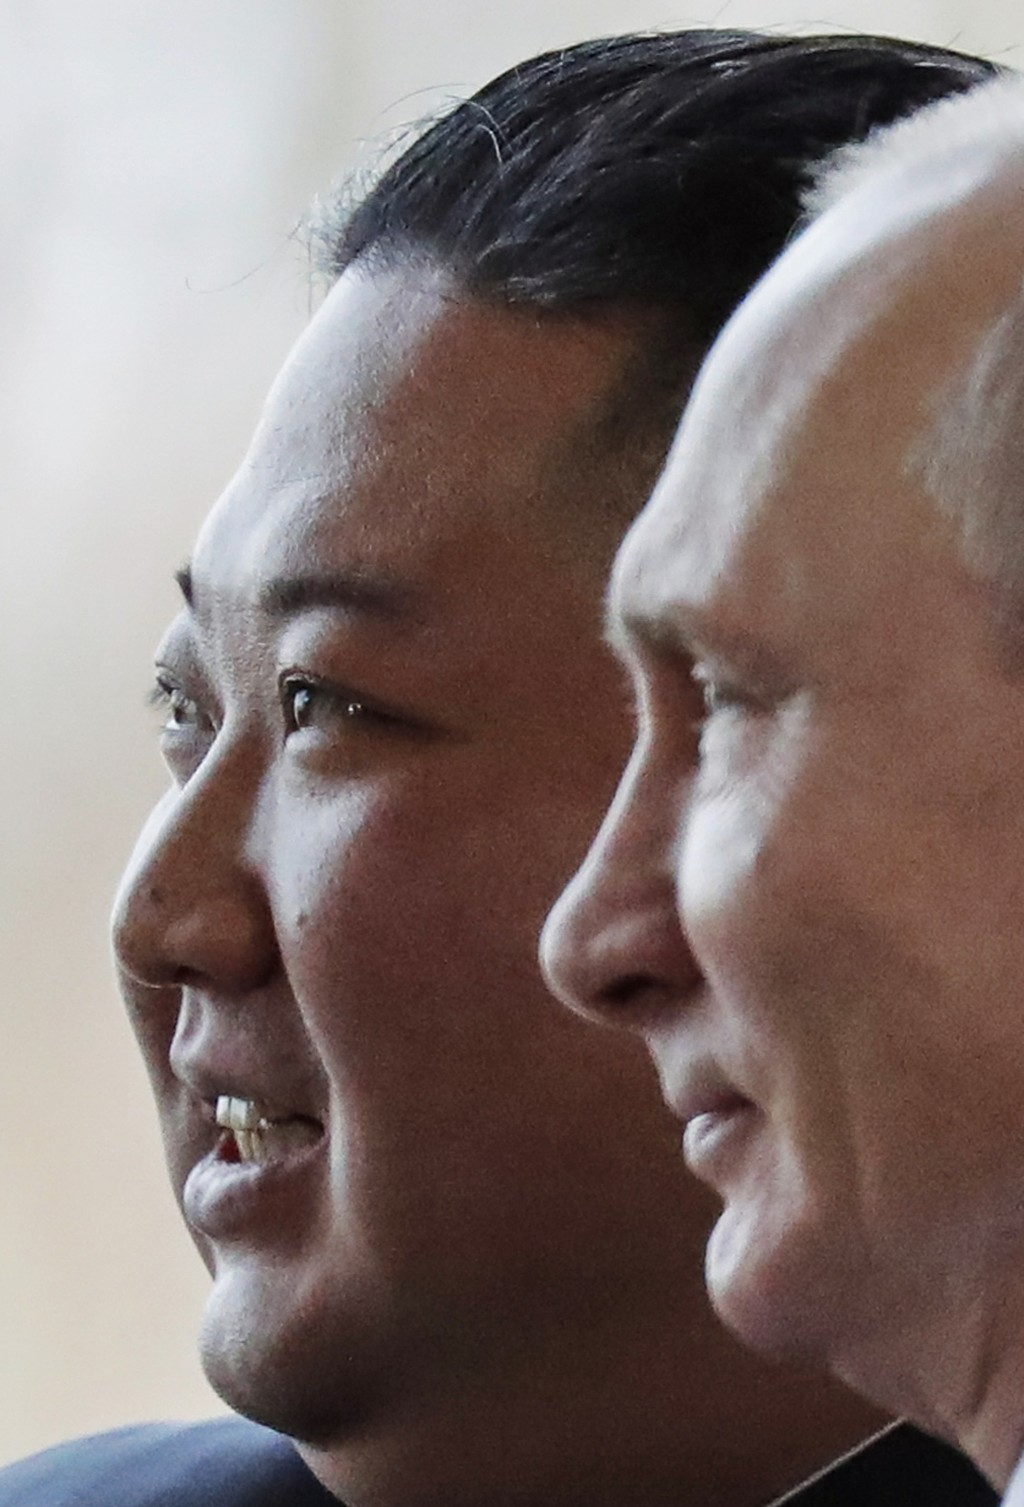 Russian President Vladimir Putin, right, and North Korea's leader Kim Jong Un pose for photographers during their meeting in Vladivostok, Russia, Thur